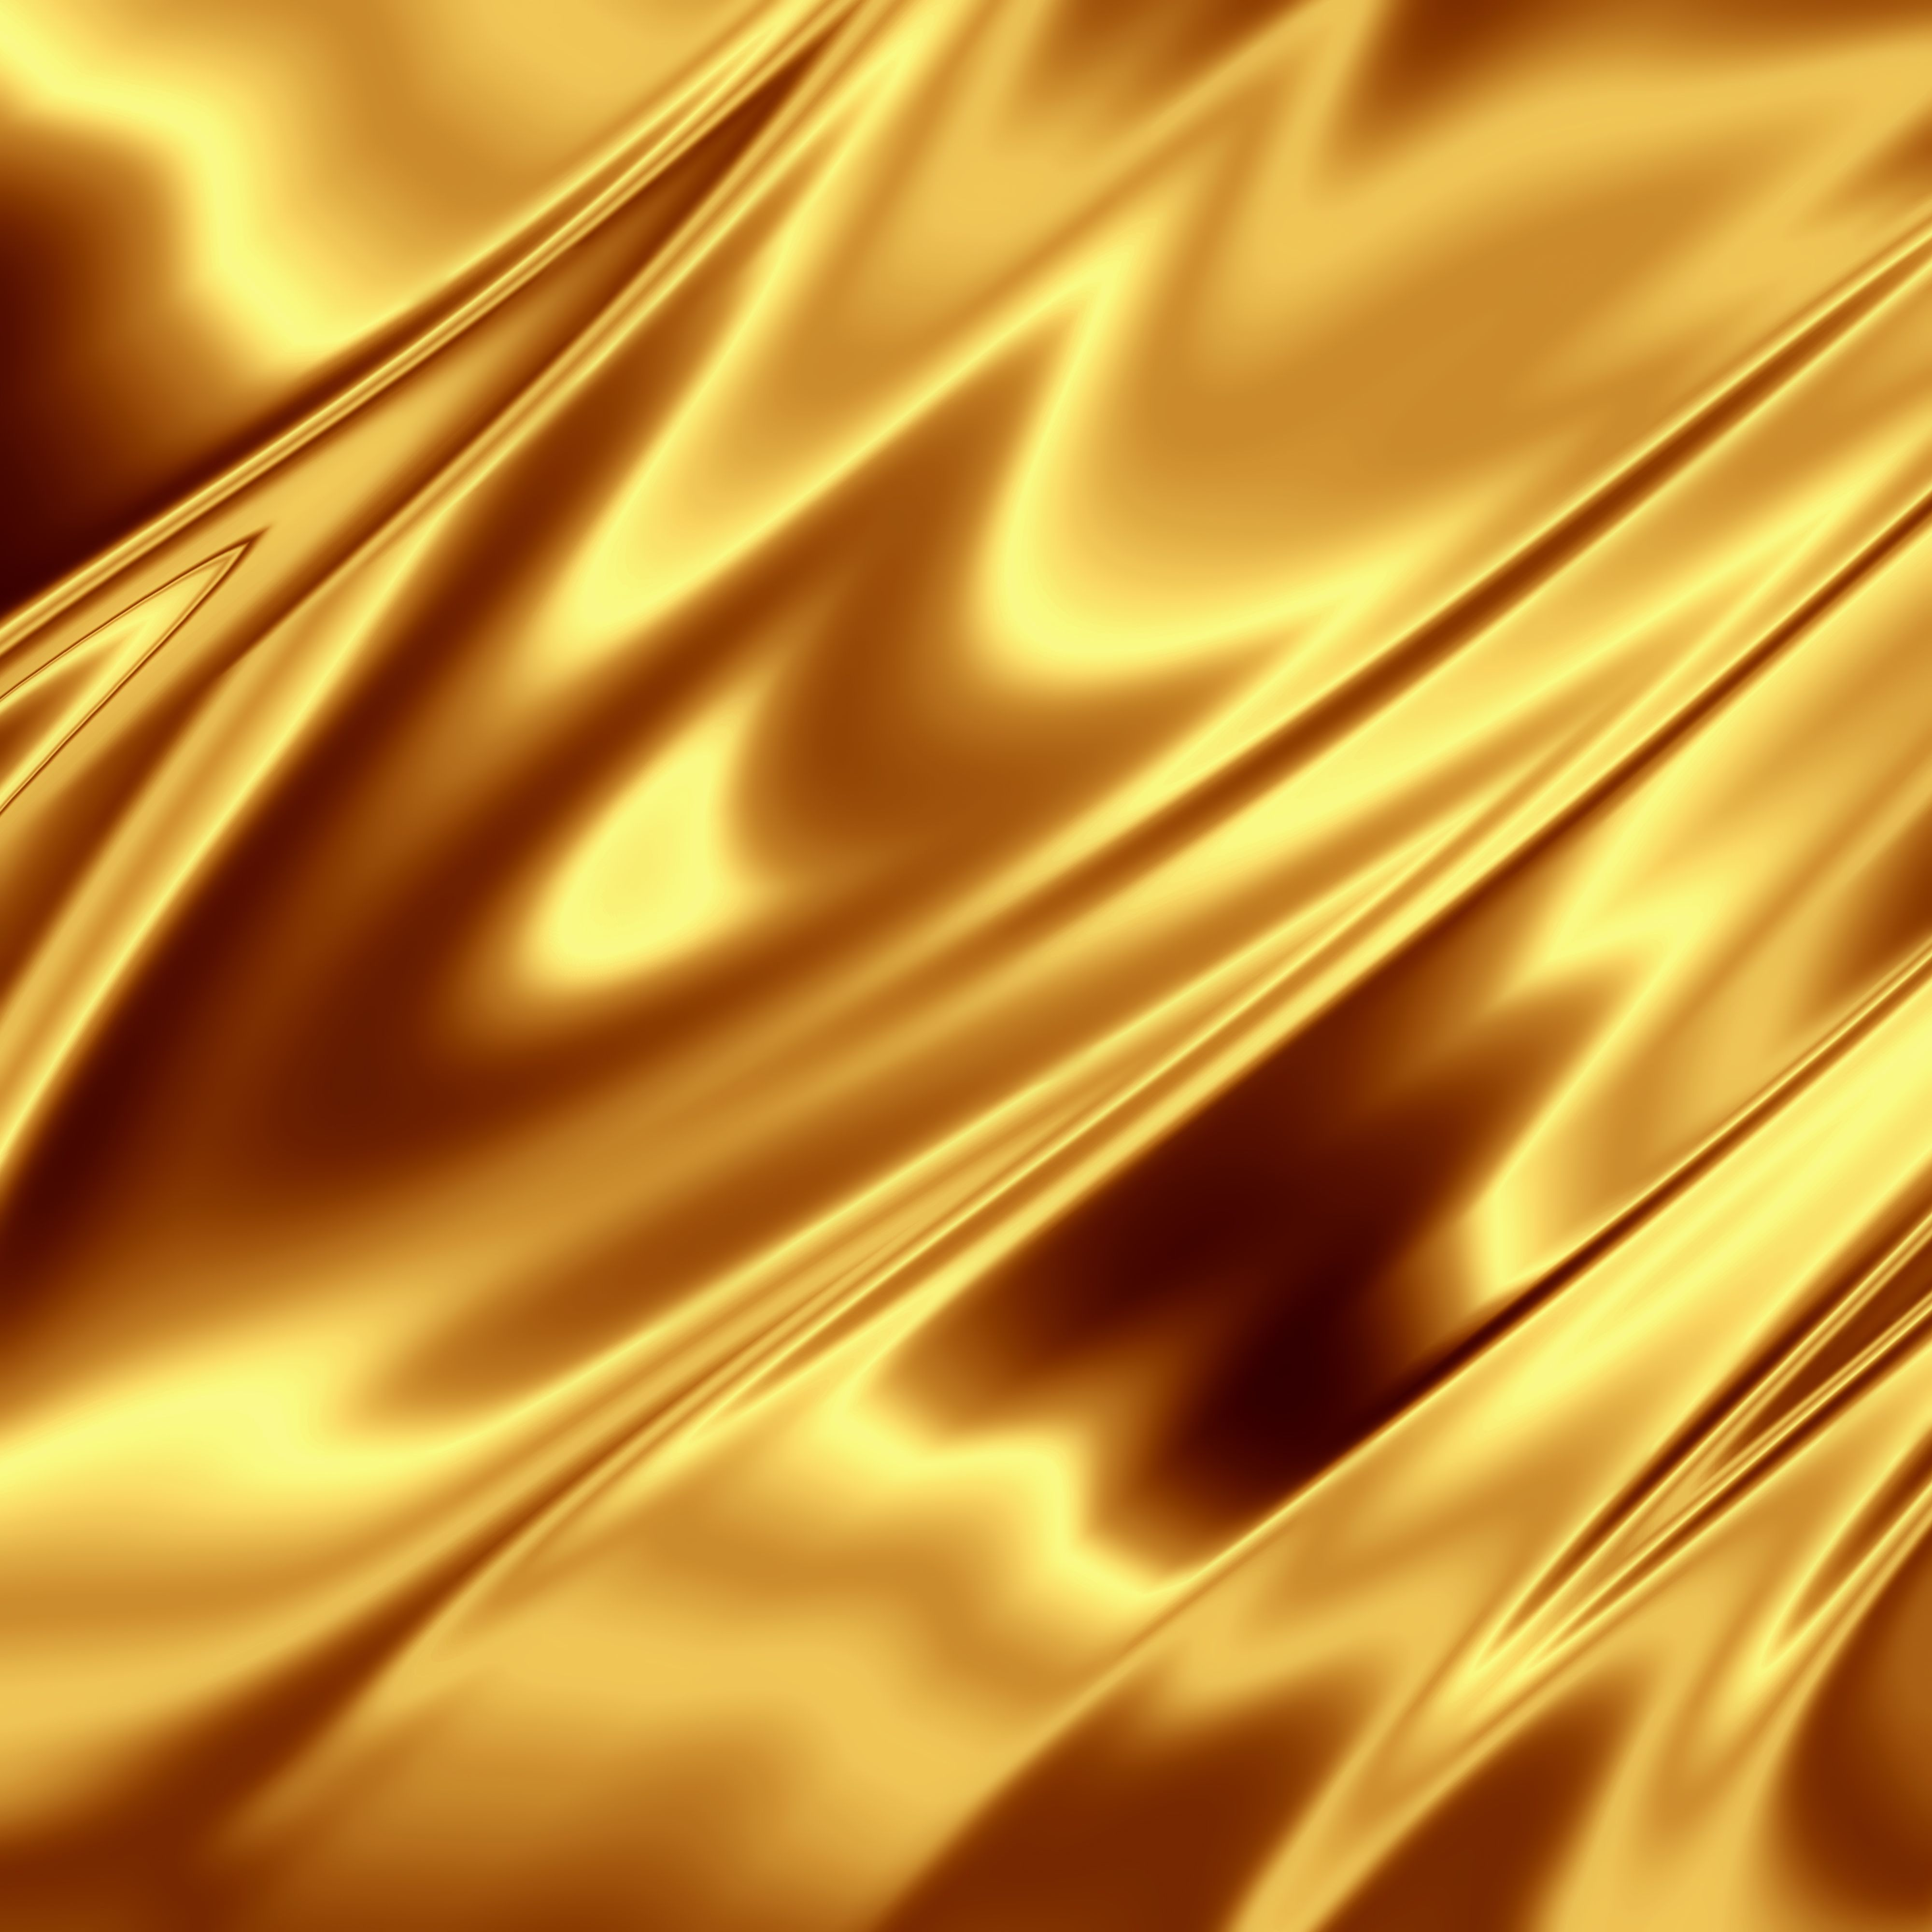 Gold Satin Background Gallery Yopriceville High Quality Images And Transparent Png Free Clipart Gold Aesthetic Golden Background Golden Wallpaper